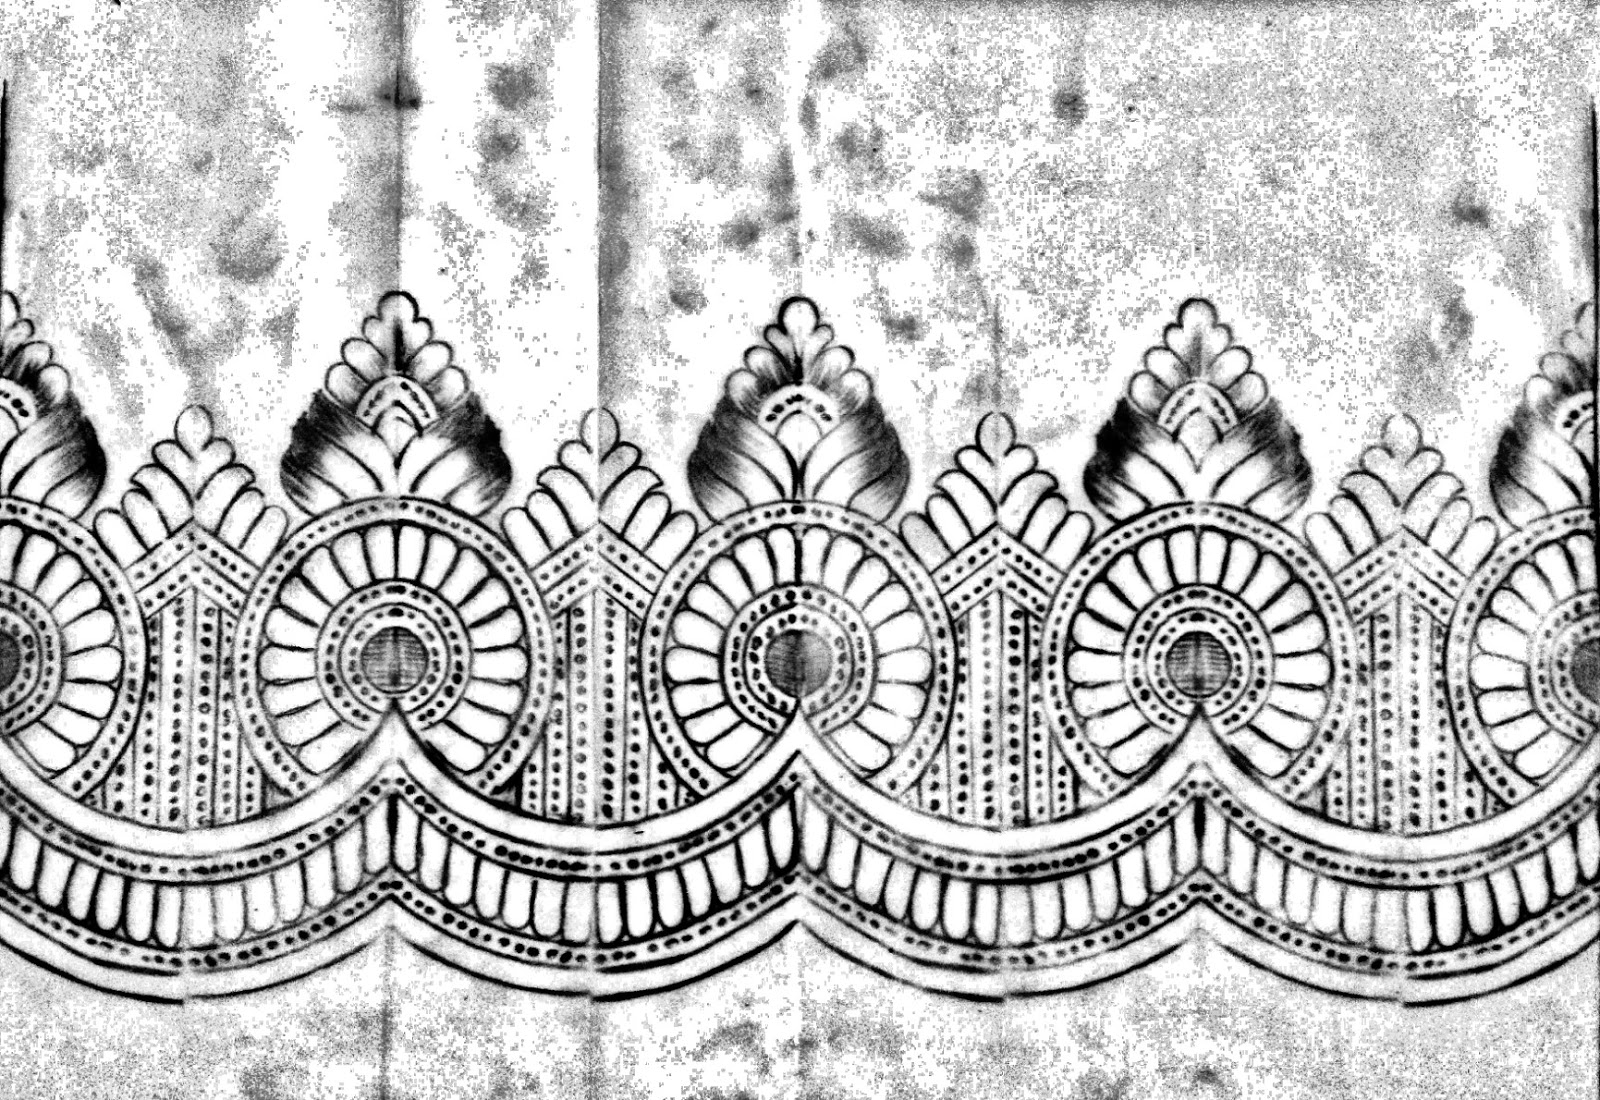 Pencil sketches new saree border design picture free download/embroidery design patterns free download .